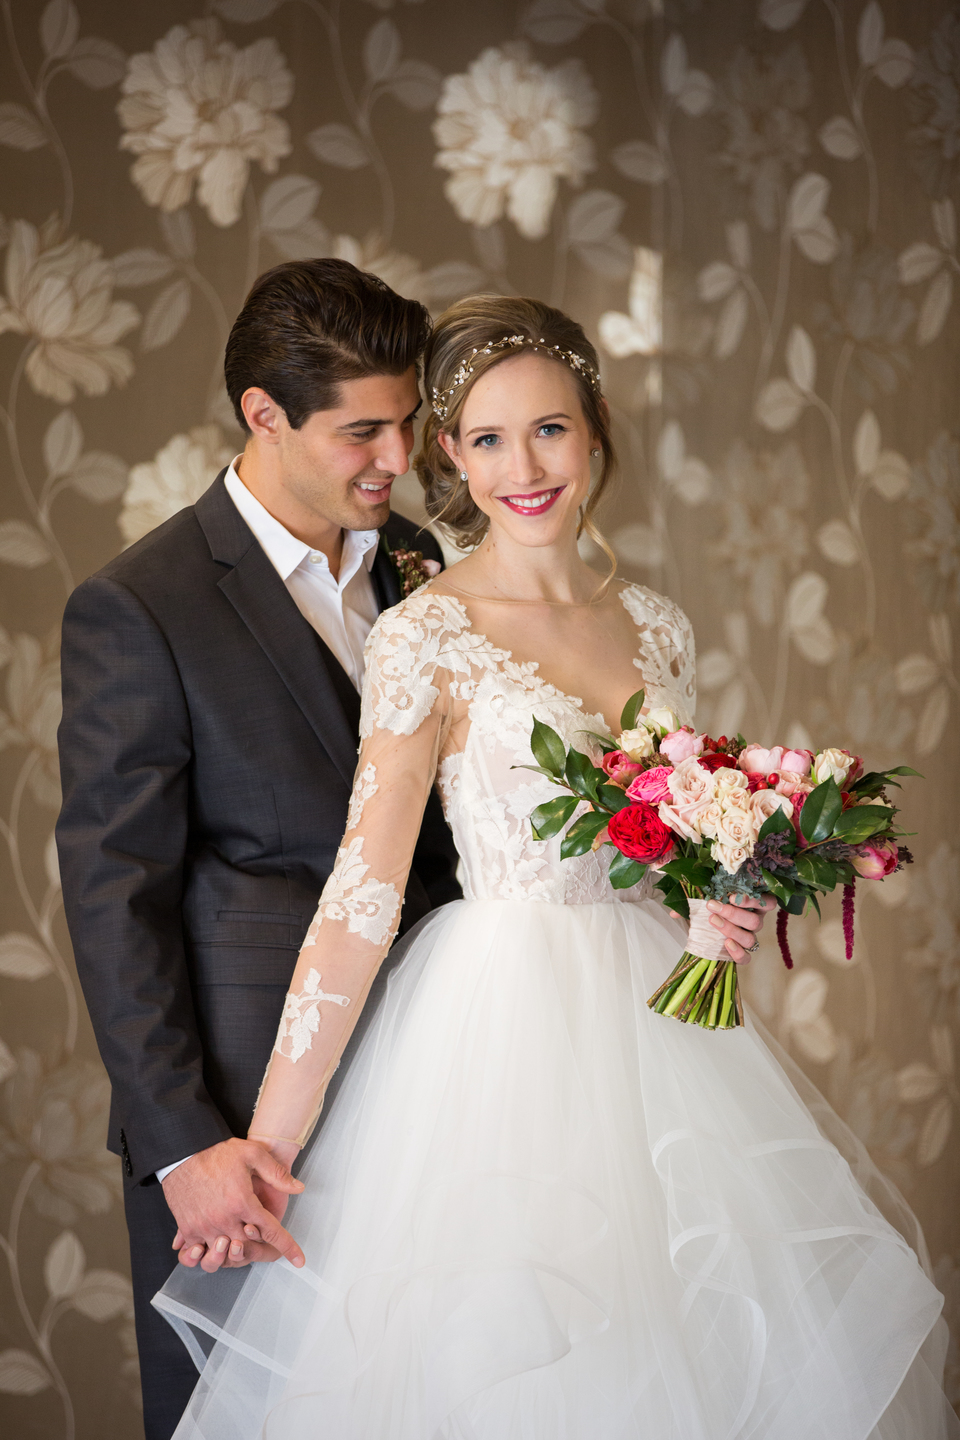 Valentine's Day Style Shoot – Romantic Wedding Inspiration